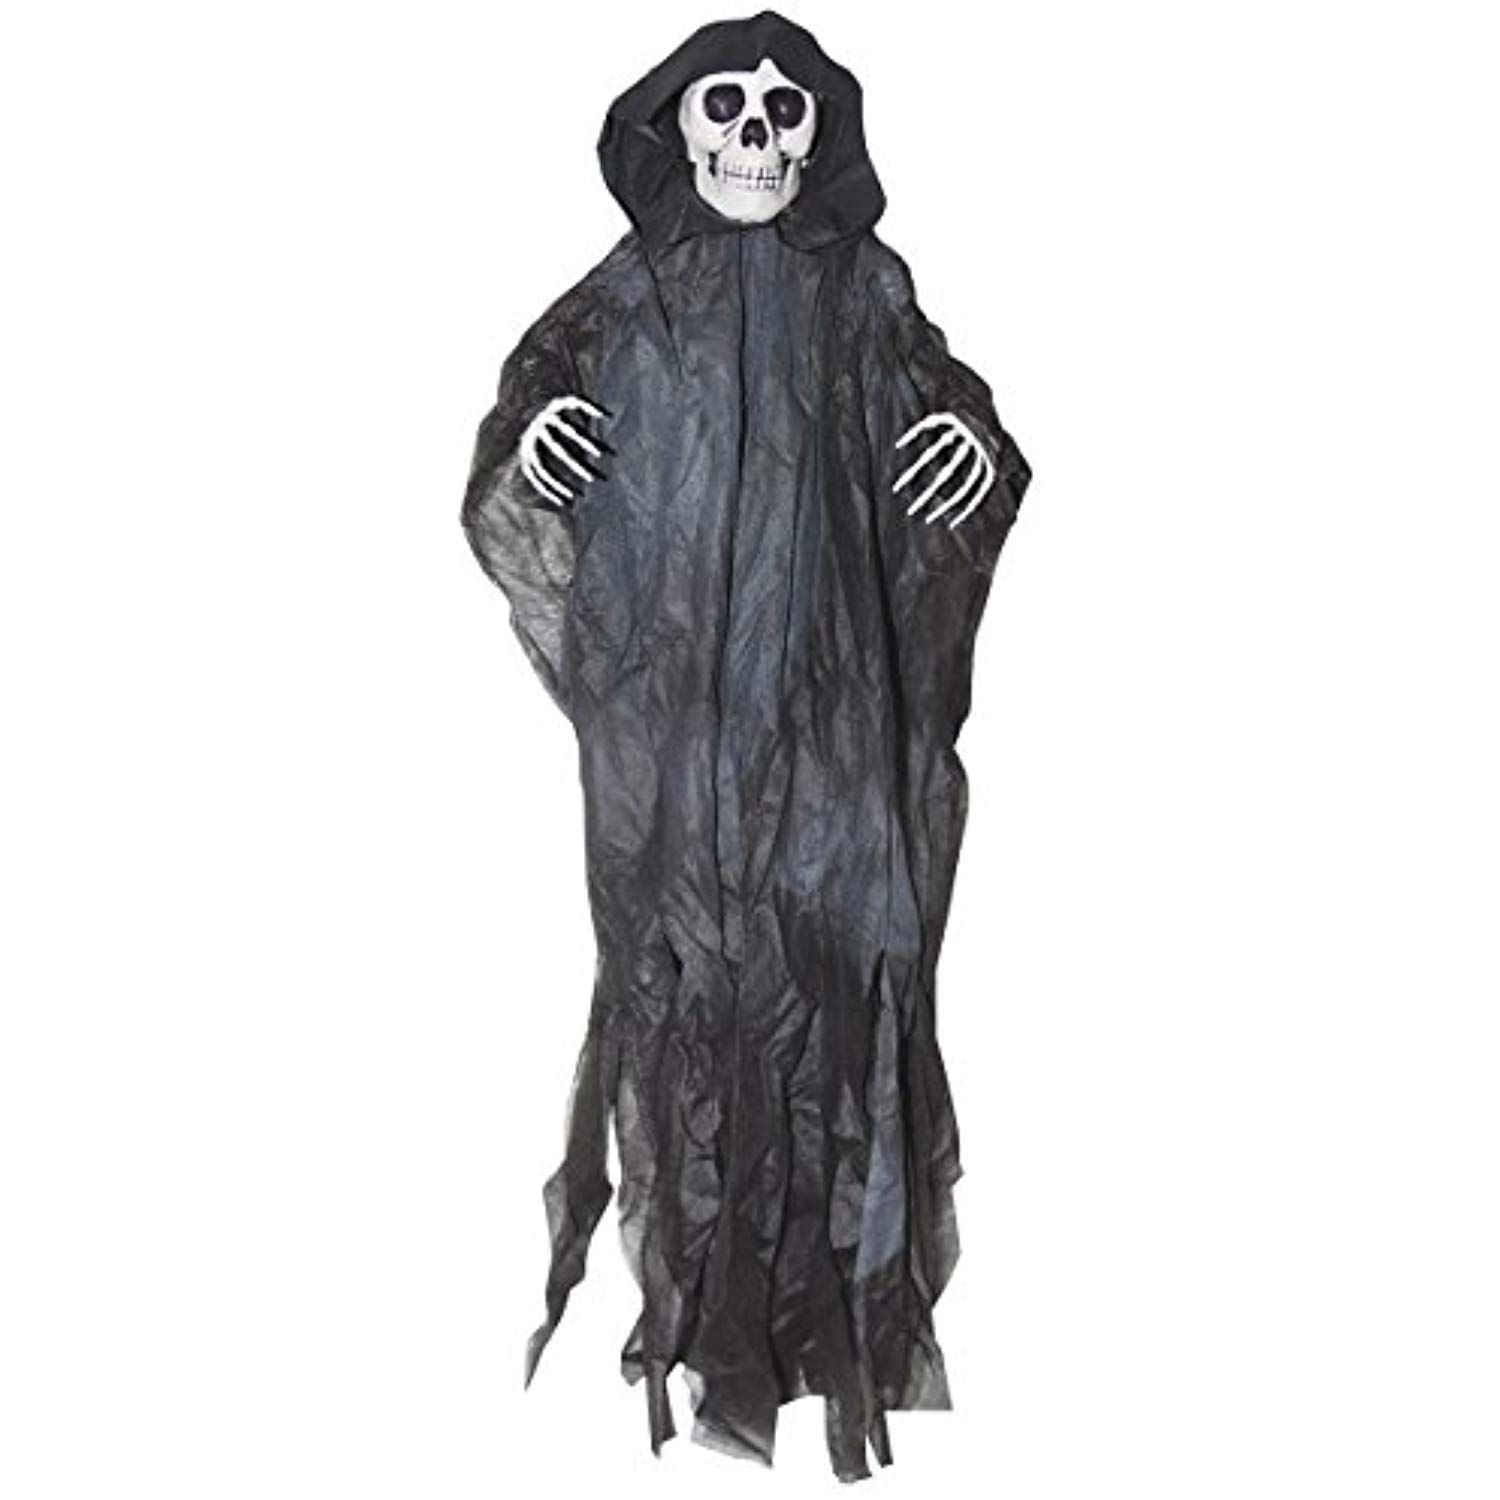 The Gothic Collection Hanging Black Reaper Skeleton Decorations 32 Inch Read More At Image Link Partysupplies